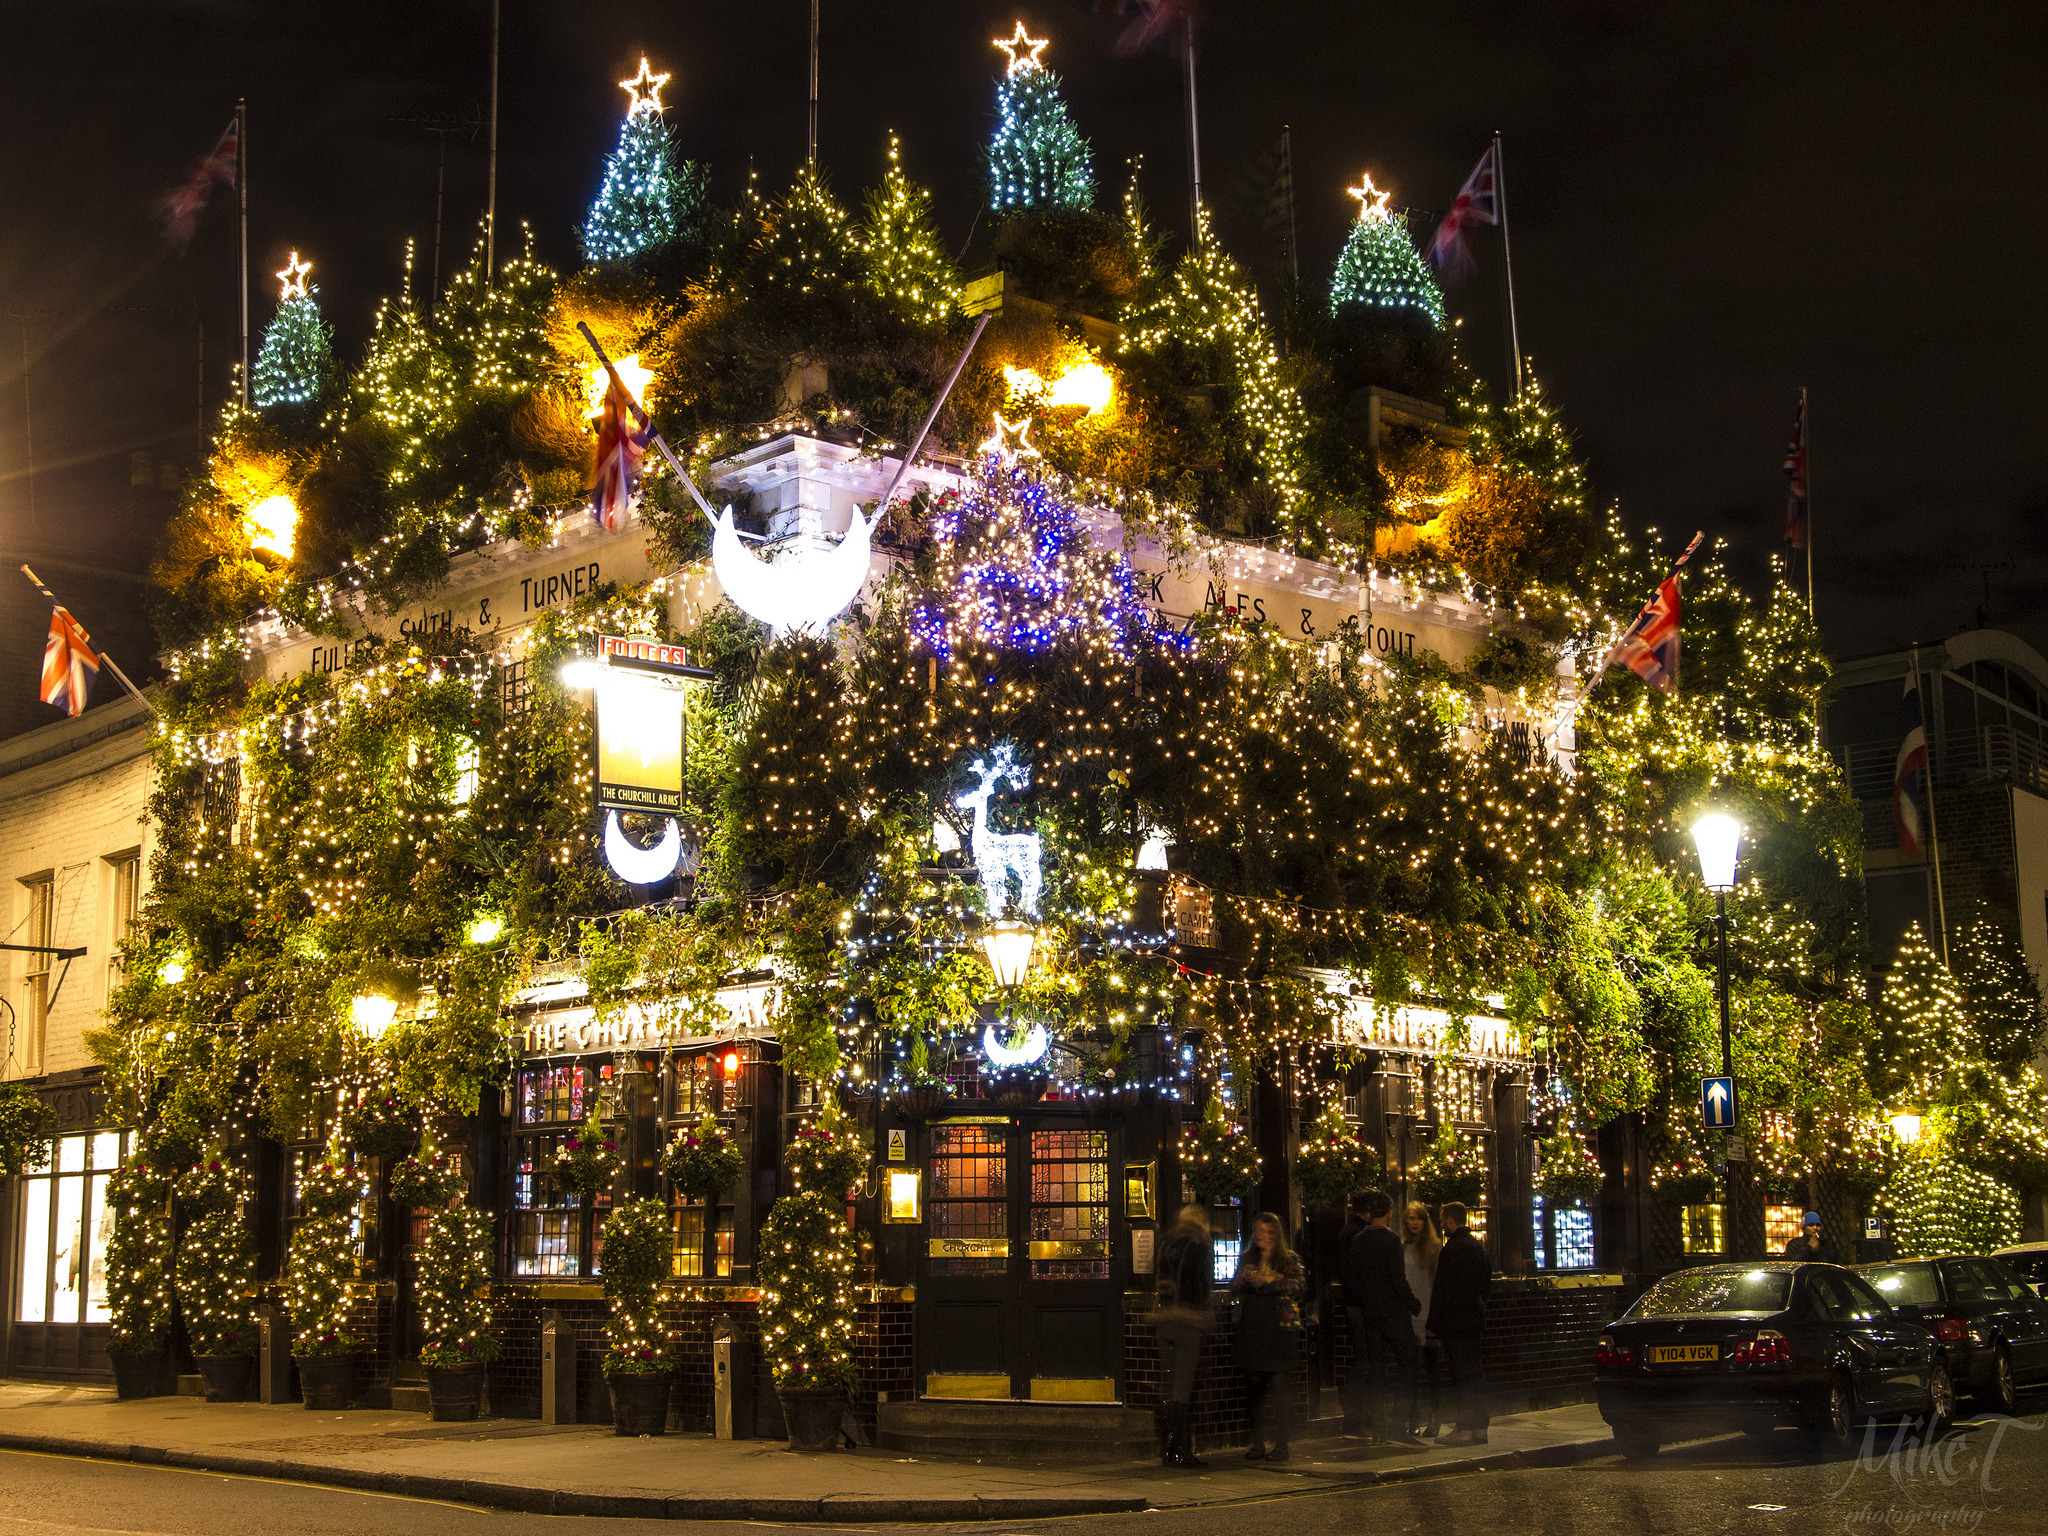 40 festive photos of Christmas in London